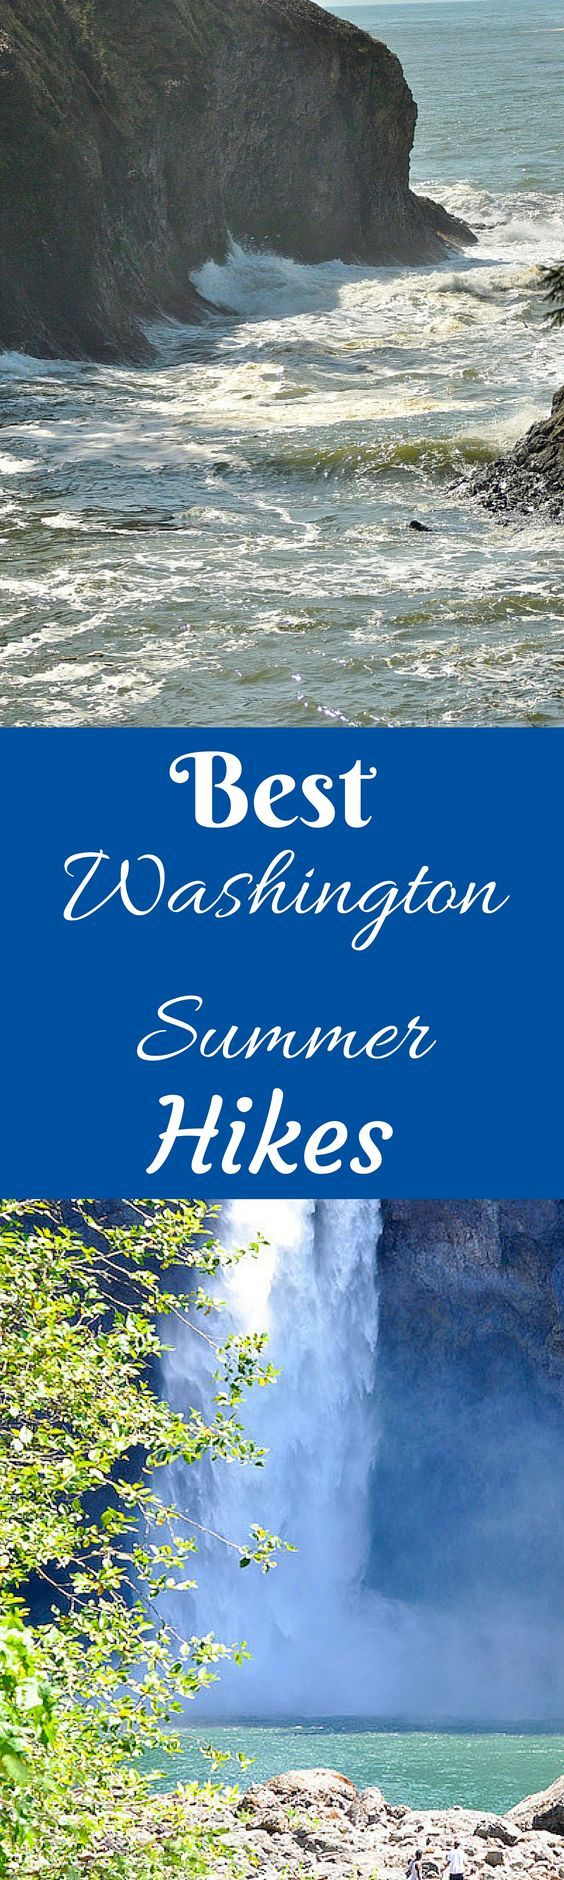 A list of some of the best hikes in Washington State to do this summer.